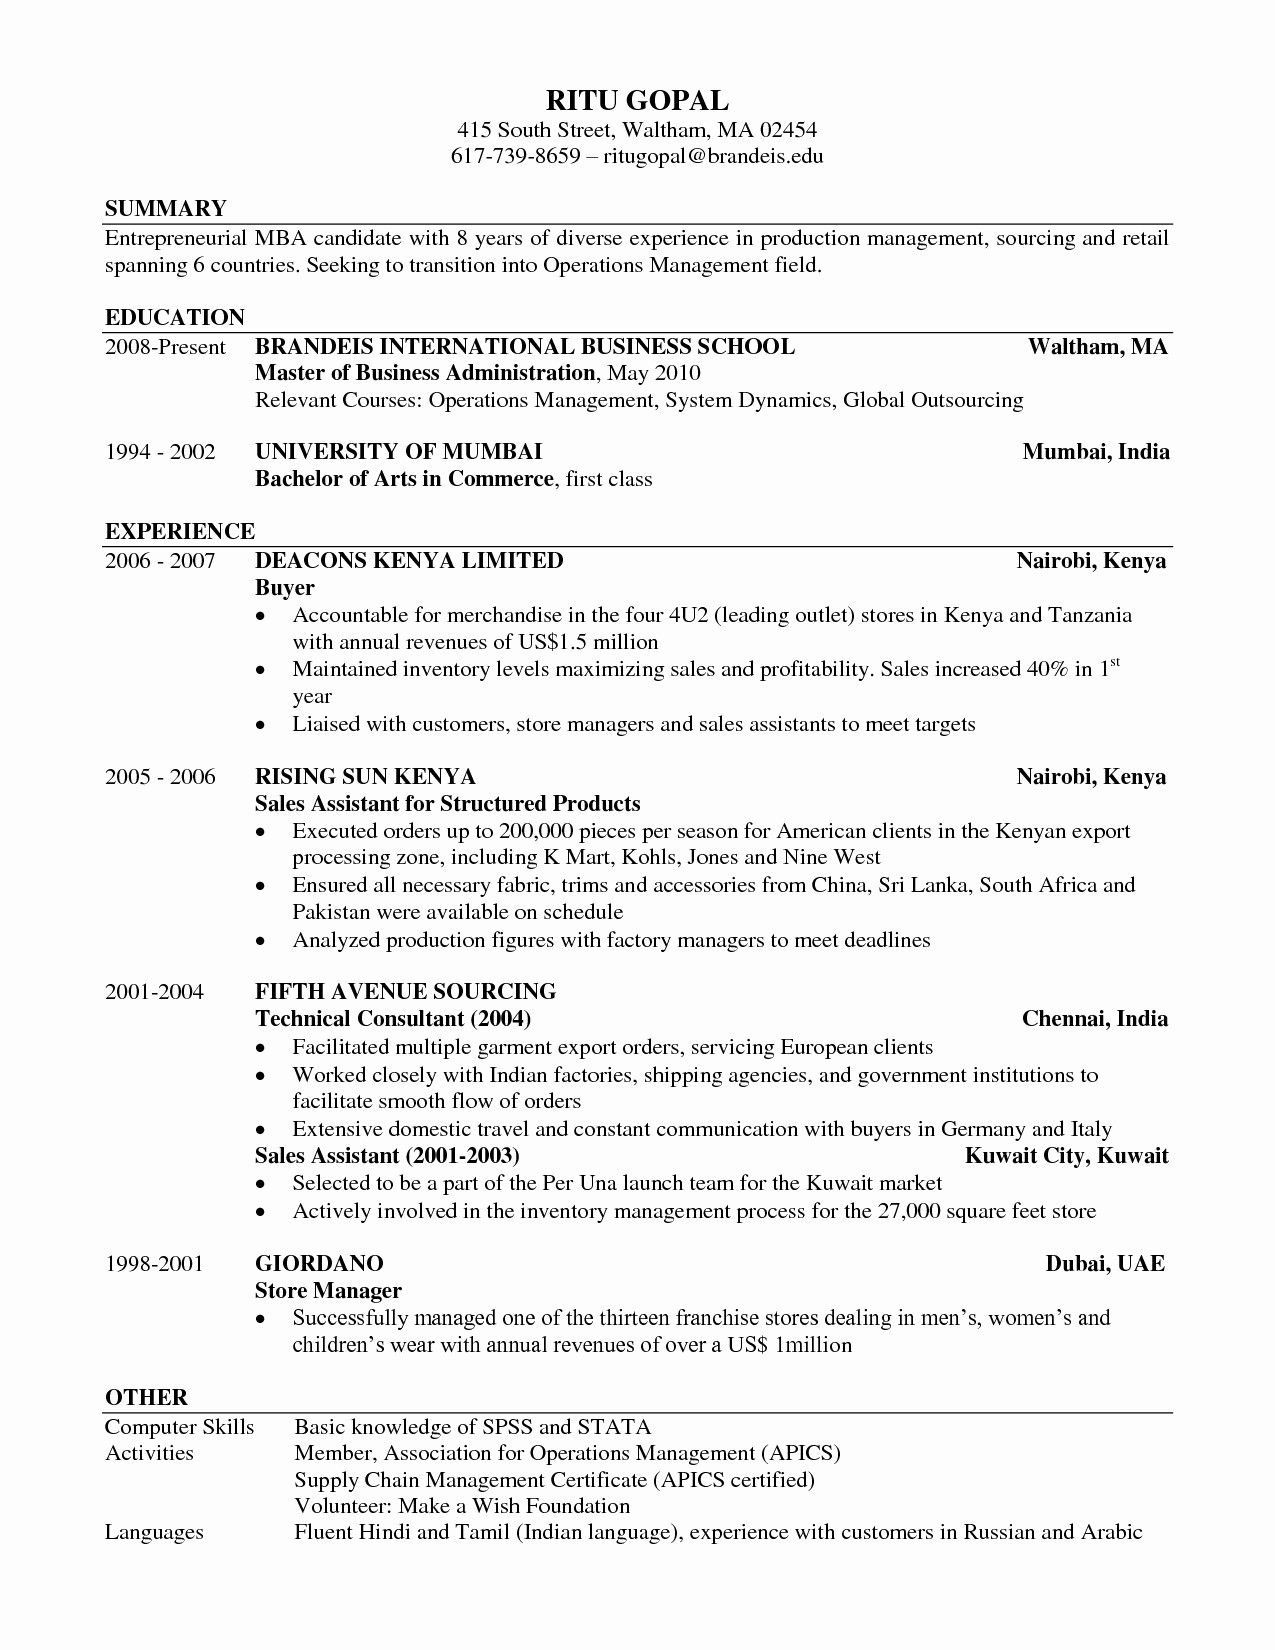 Law school personal statement samples